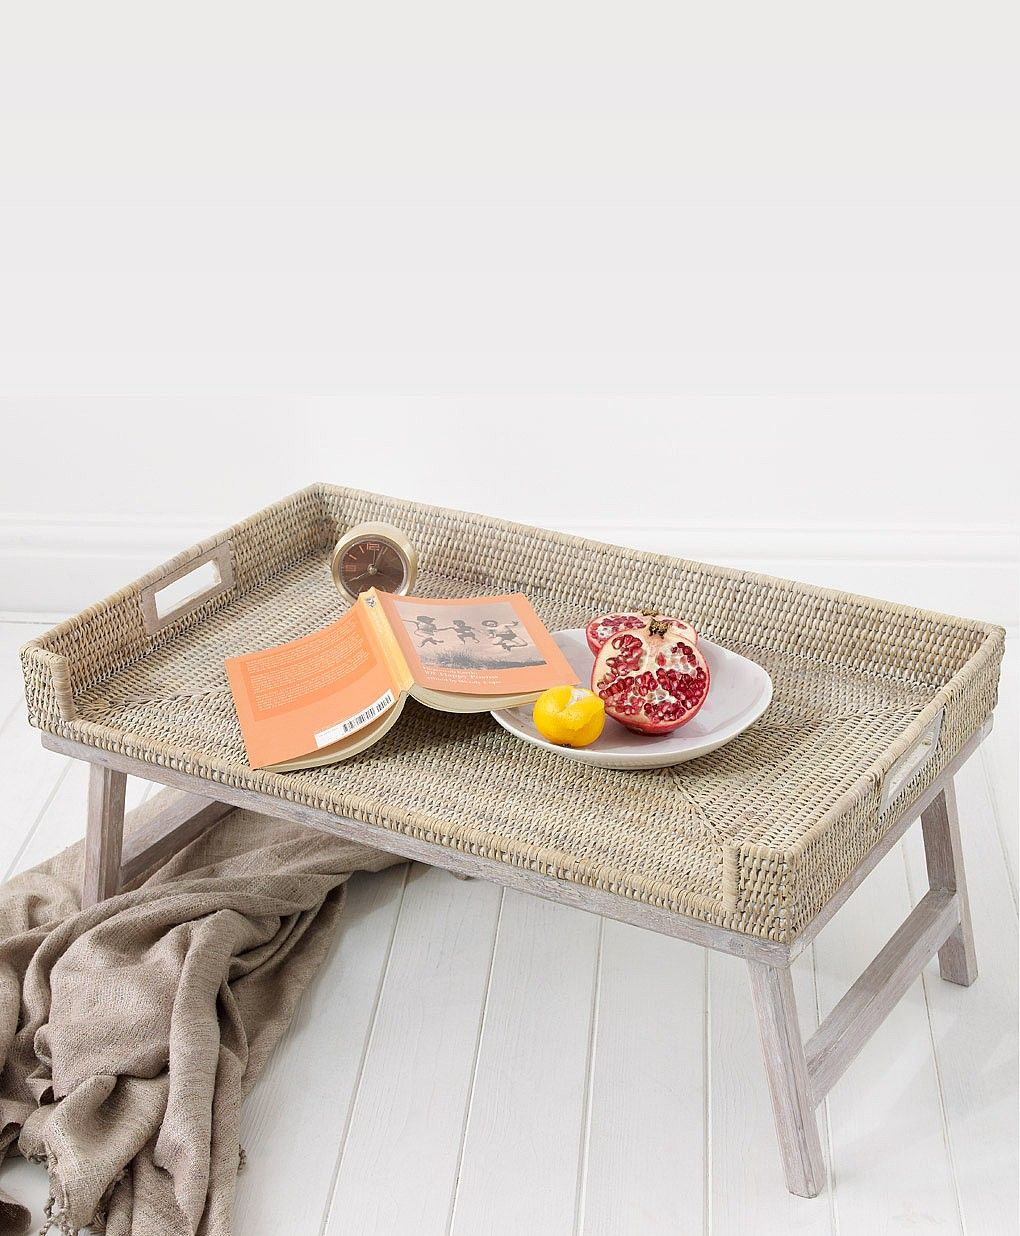 Breakfast Trays For Bed Endearing Rattan Breakfast Tray  Breakfast Tray Rattan And Trays Design Inspiration